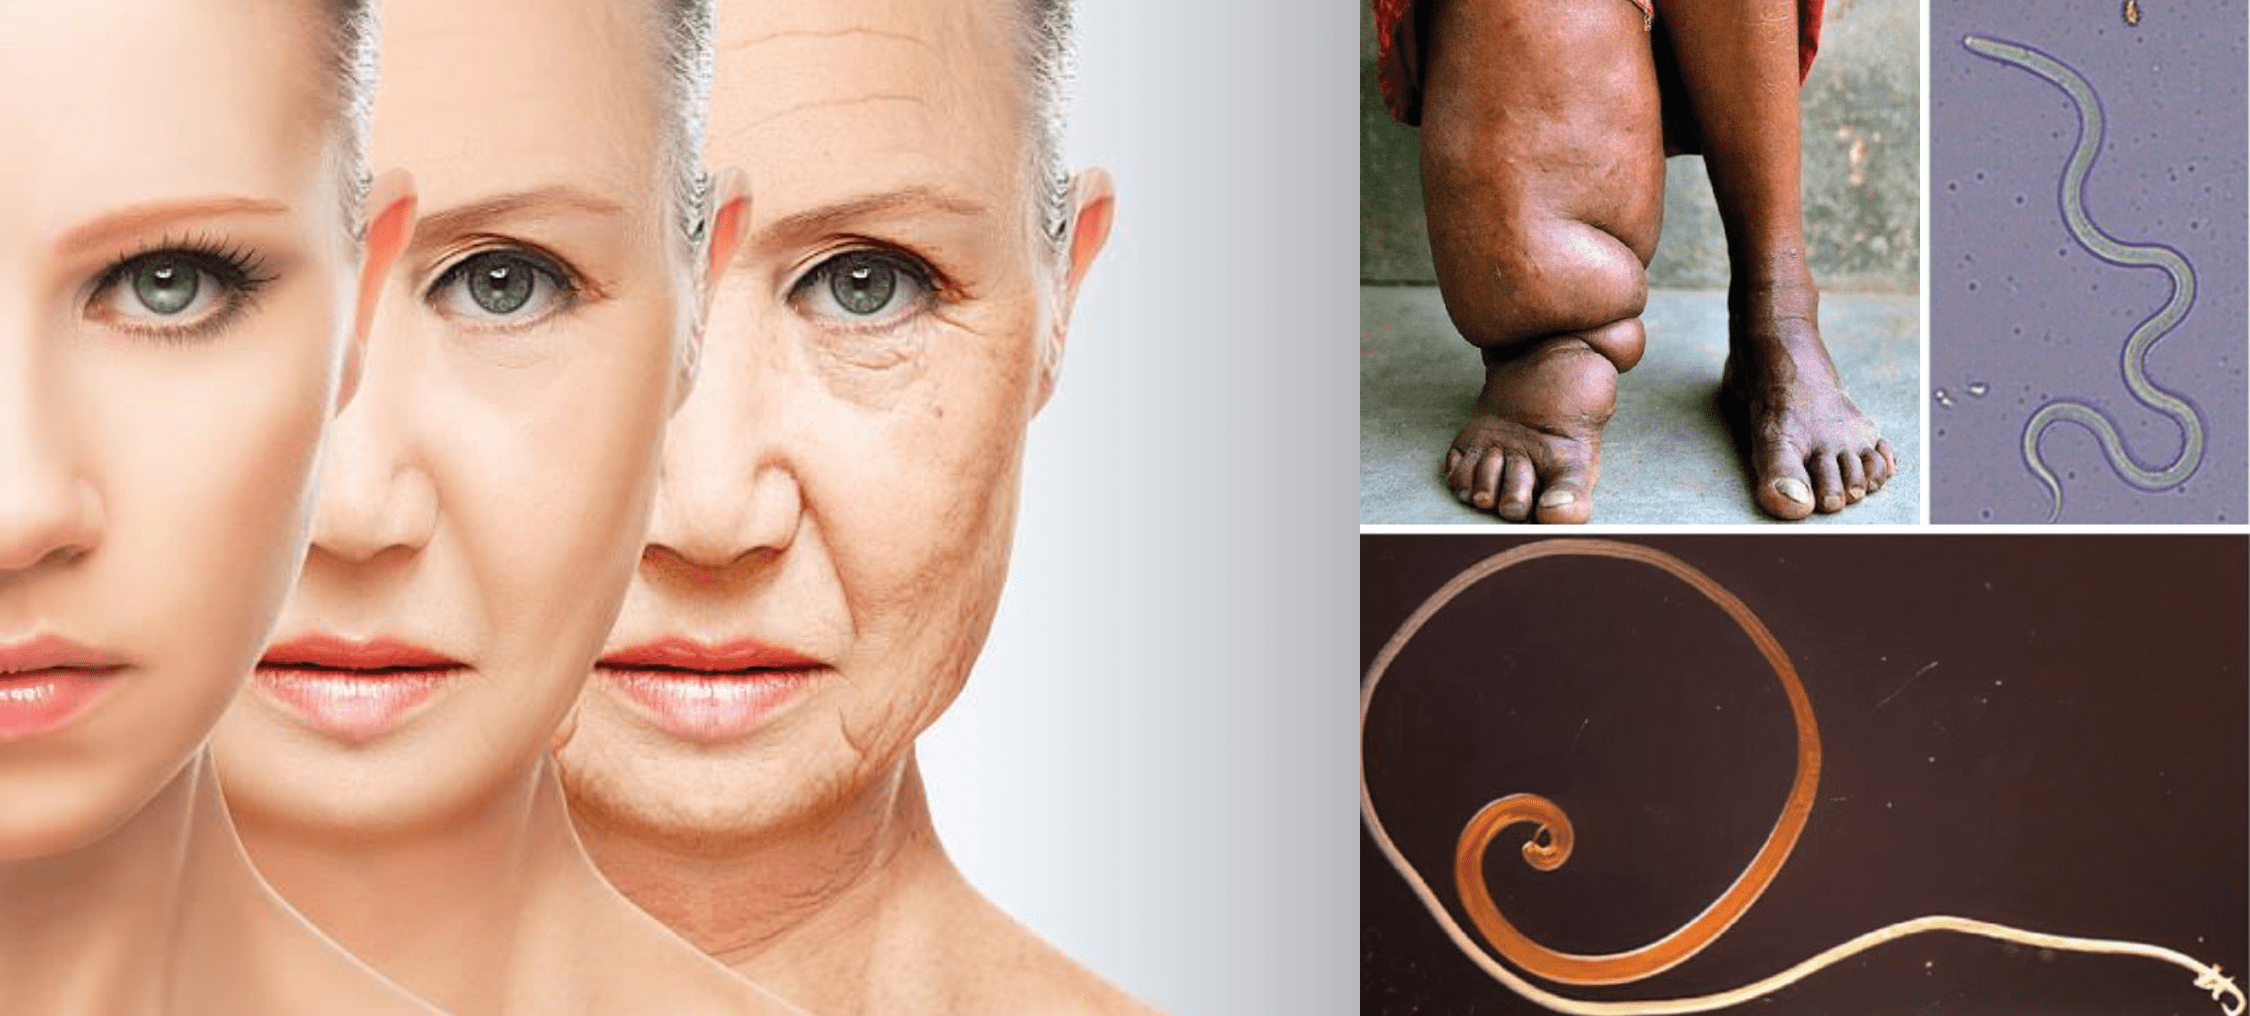 woman ageing and a parasitic worm